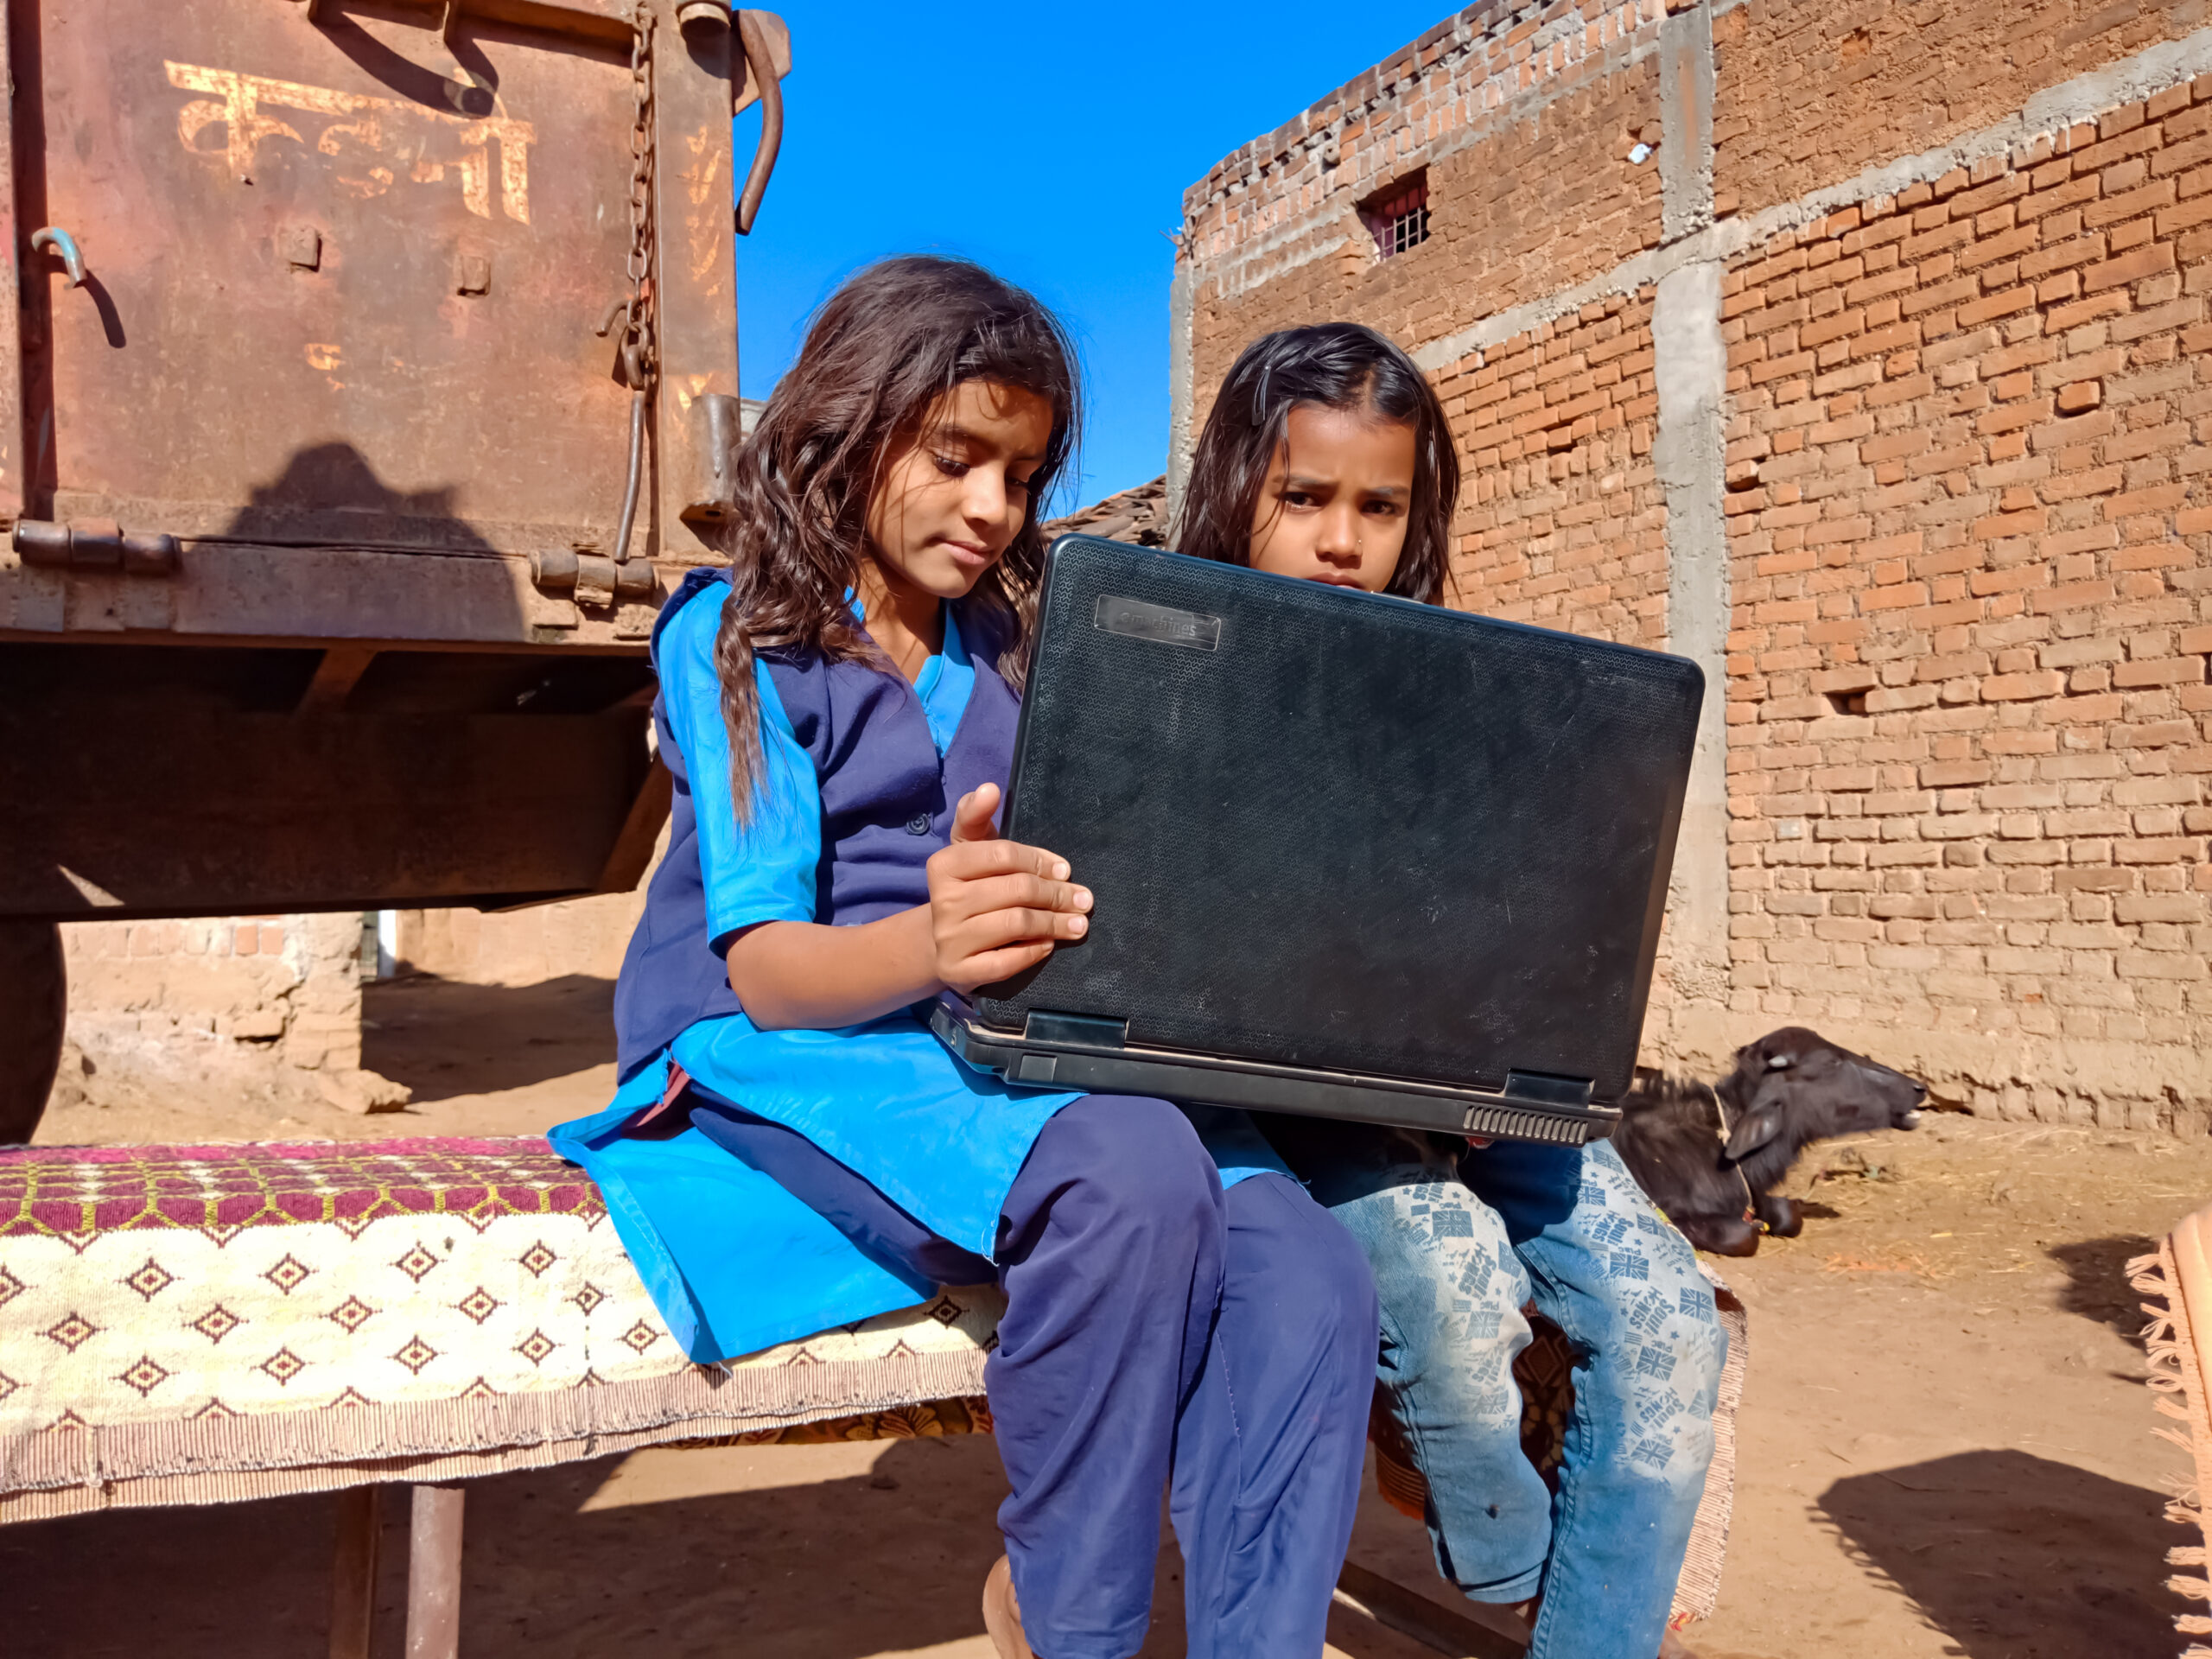 India girls laptop